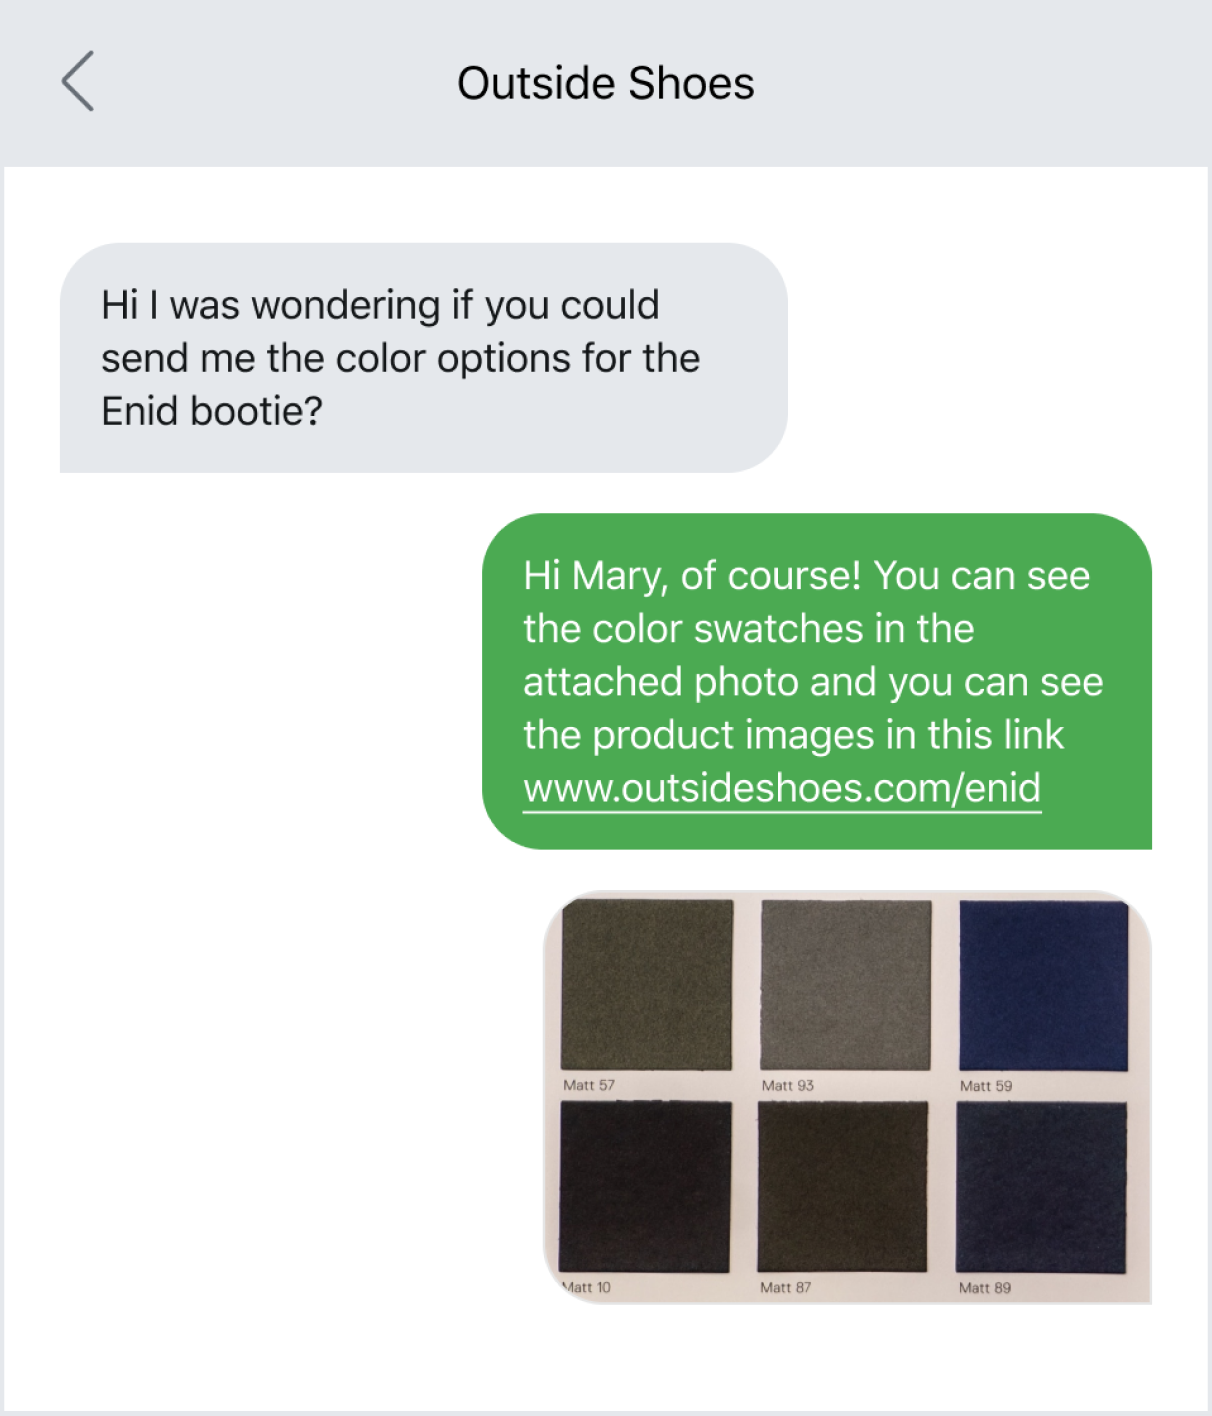 Utilizing links and photos in a text message